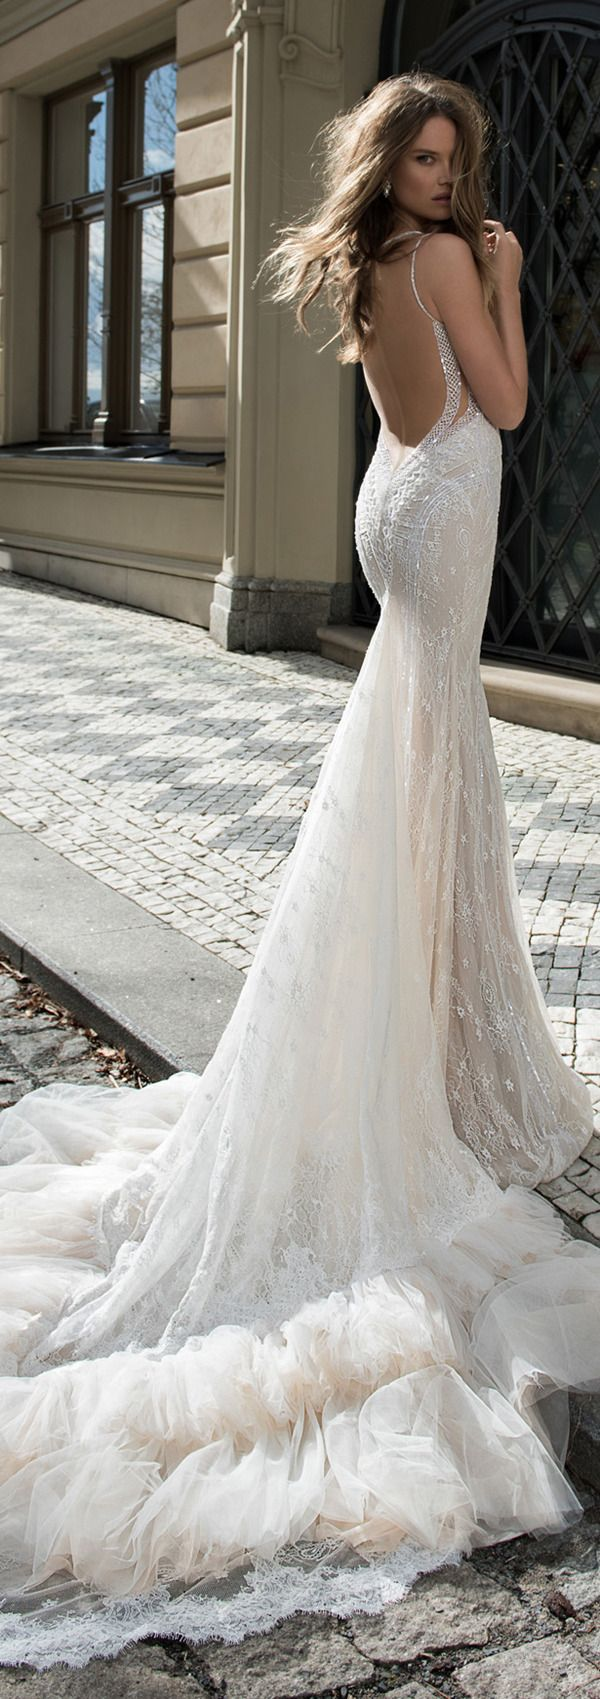 berta bridal backless long train wedding gowns